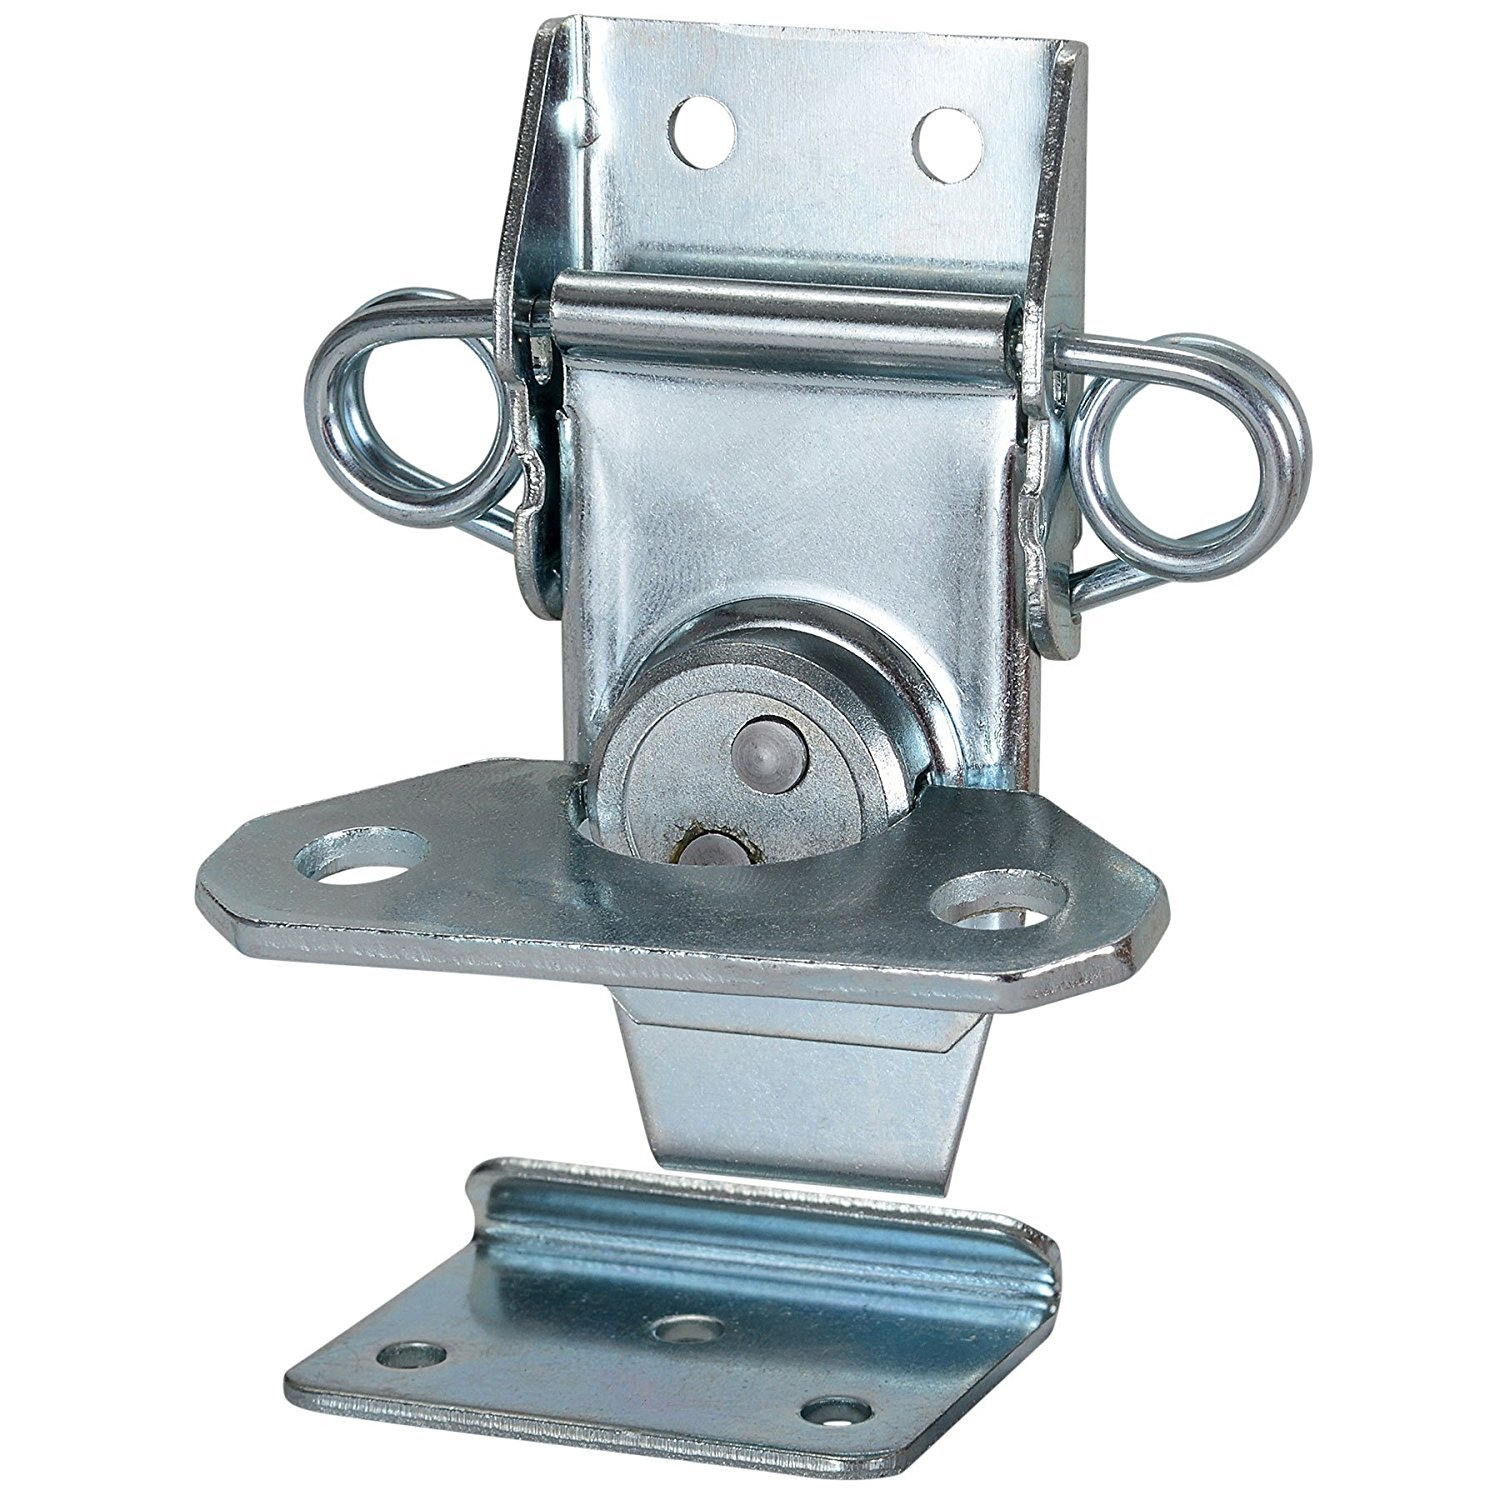 Penn Elcom L0925z Butterfly Latch Surface Mount Zinc Buy Online In Cayman Islands Brand Penn Elcom Products In Cayman Islands See Prices Reviews And Free Delivery Over Ci 60 Desertcart